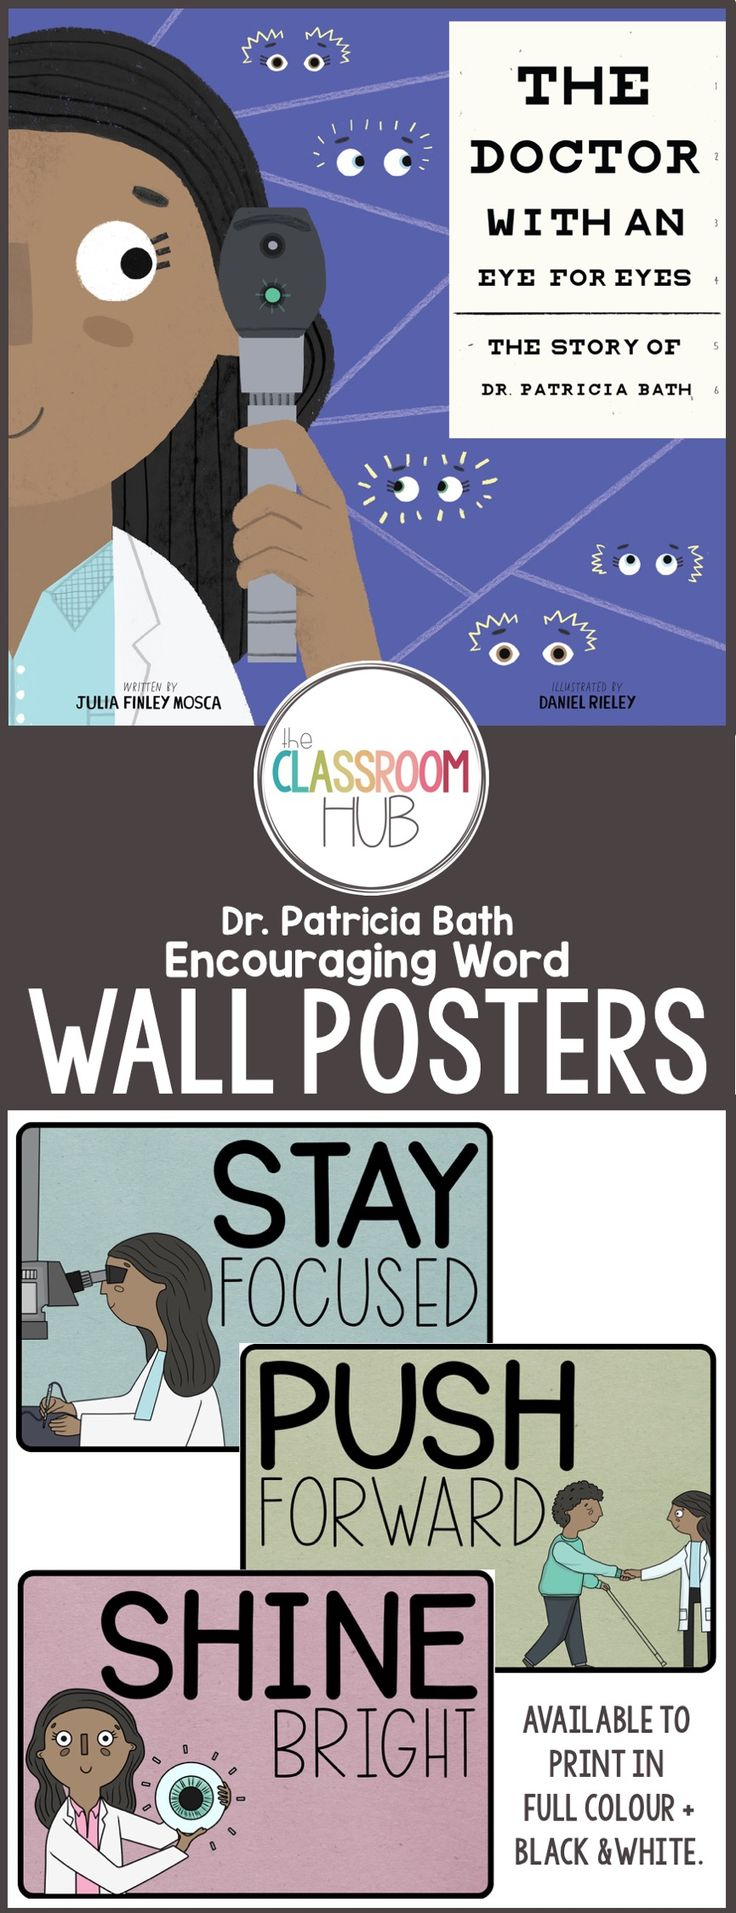 If you need some encouraging words to display in your classroom, then these science-inspired ones could be perfect. Even better? They're a free download. Click on the image to check them out.